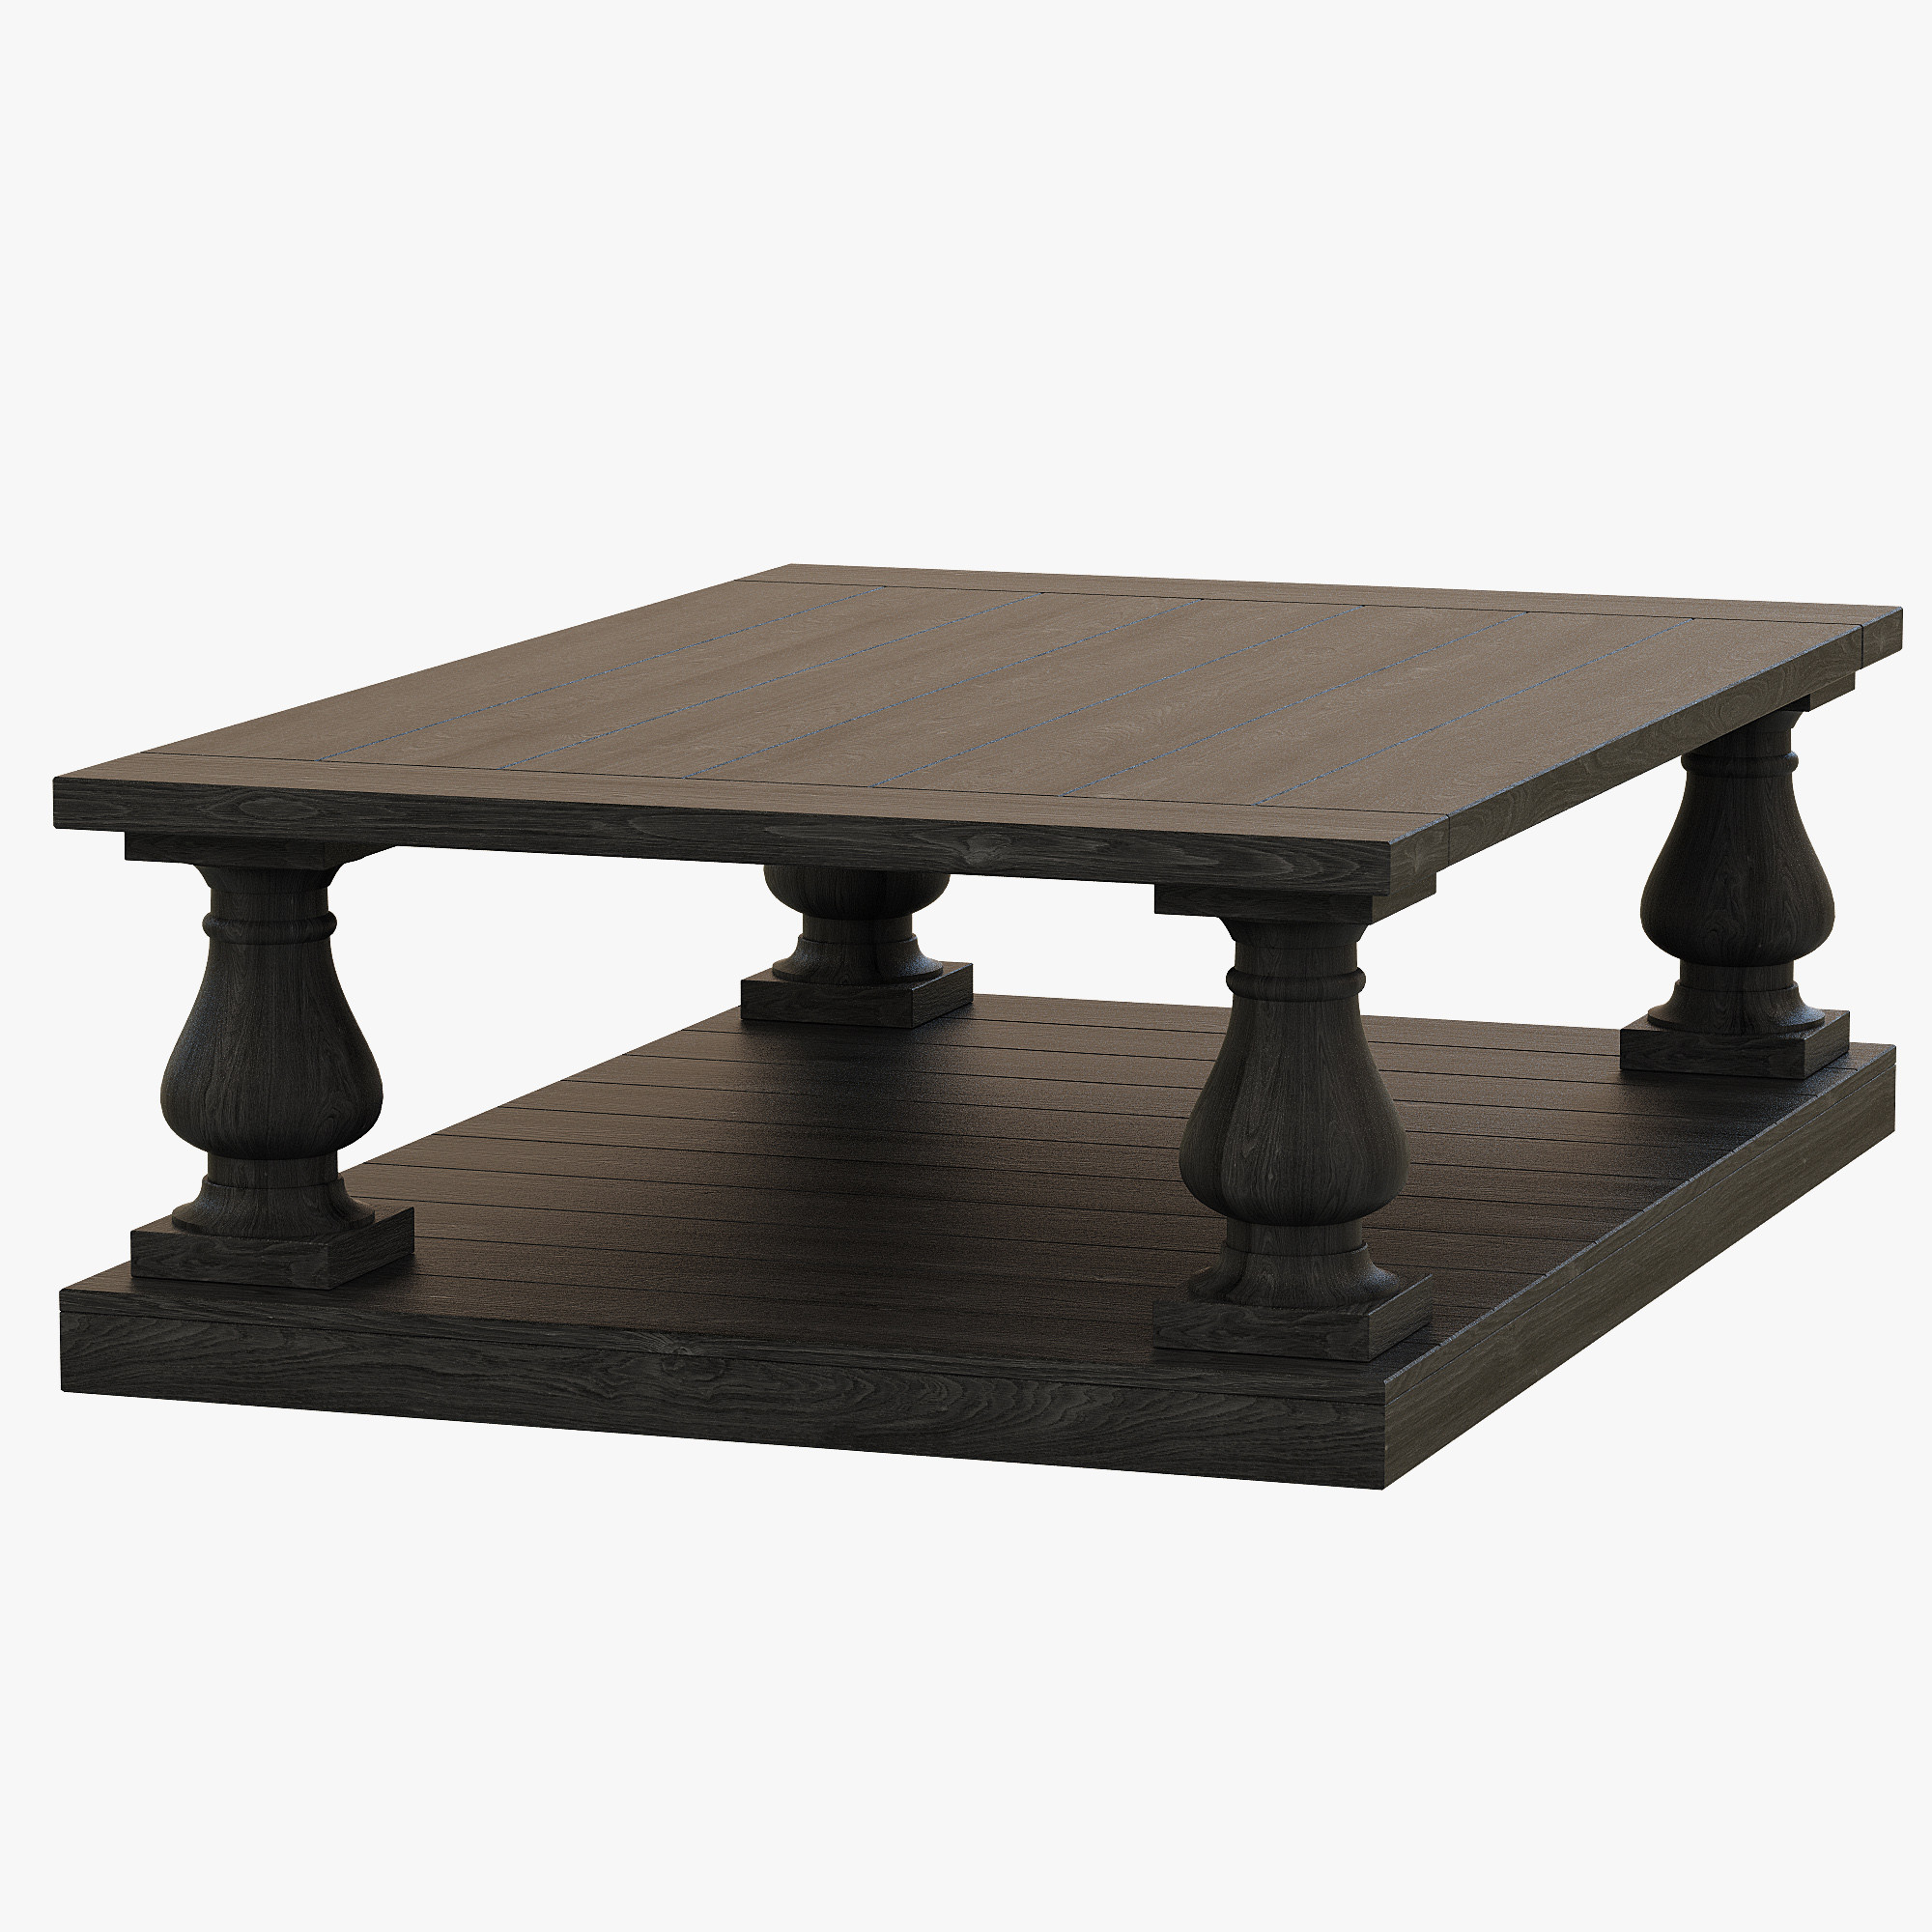 Restore A Wooden Table Restore Wood Furniture Without